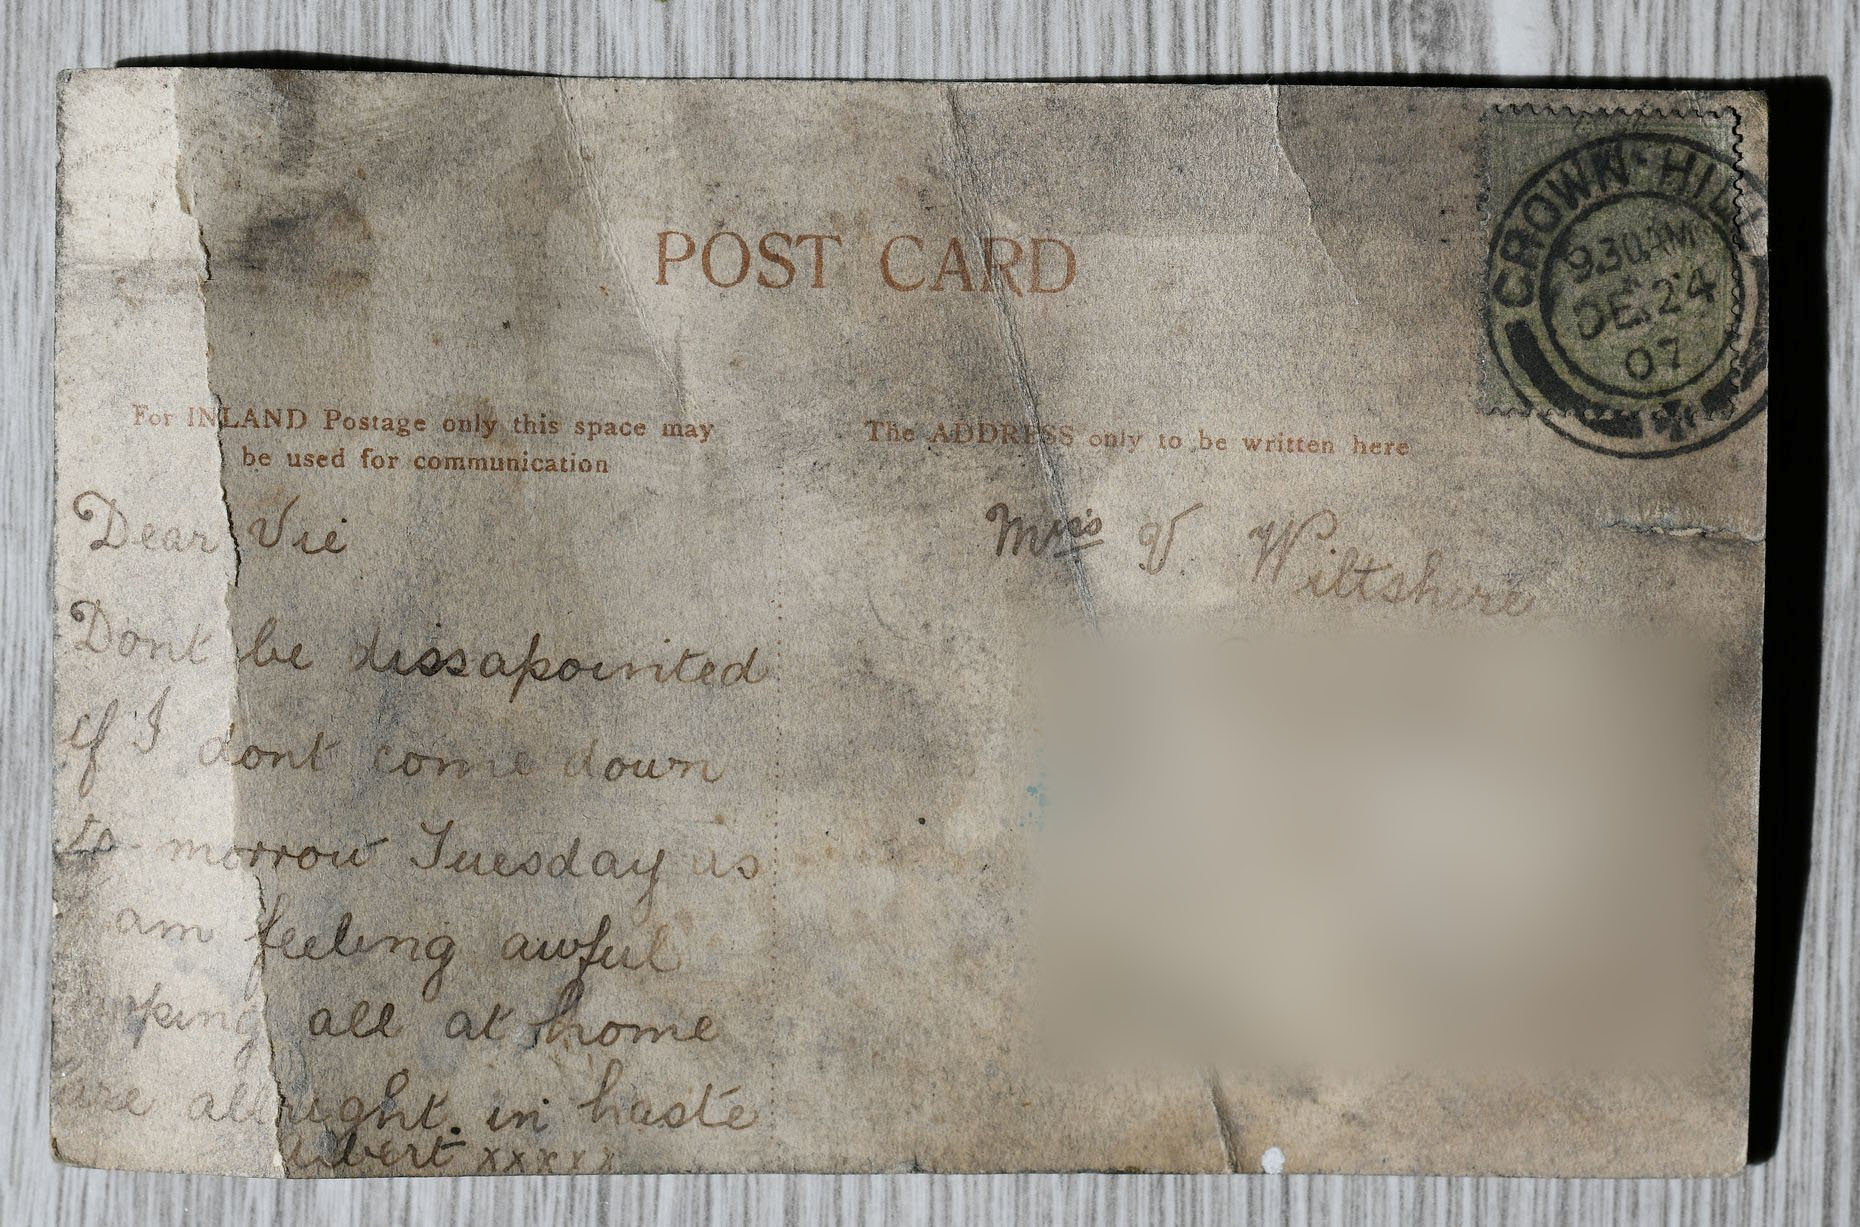 The postcard was addressed to a 'Miss Wiltshire'. Credit: SWNS